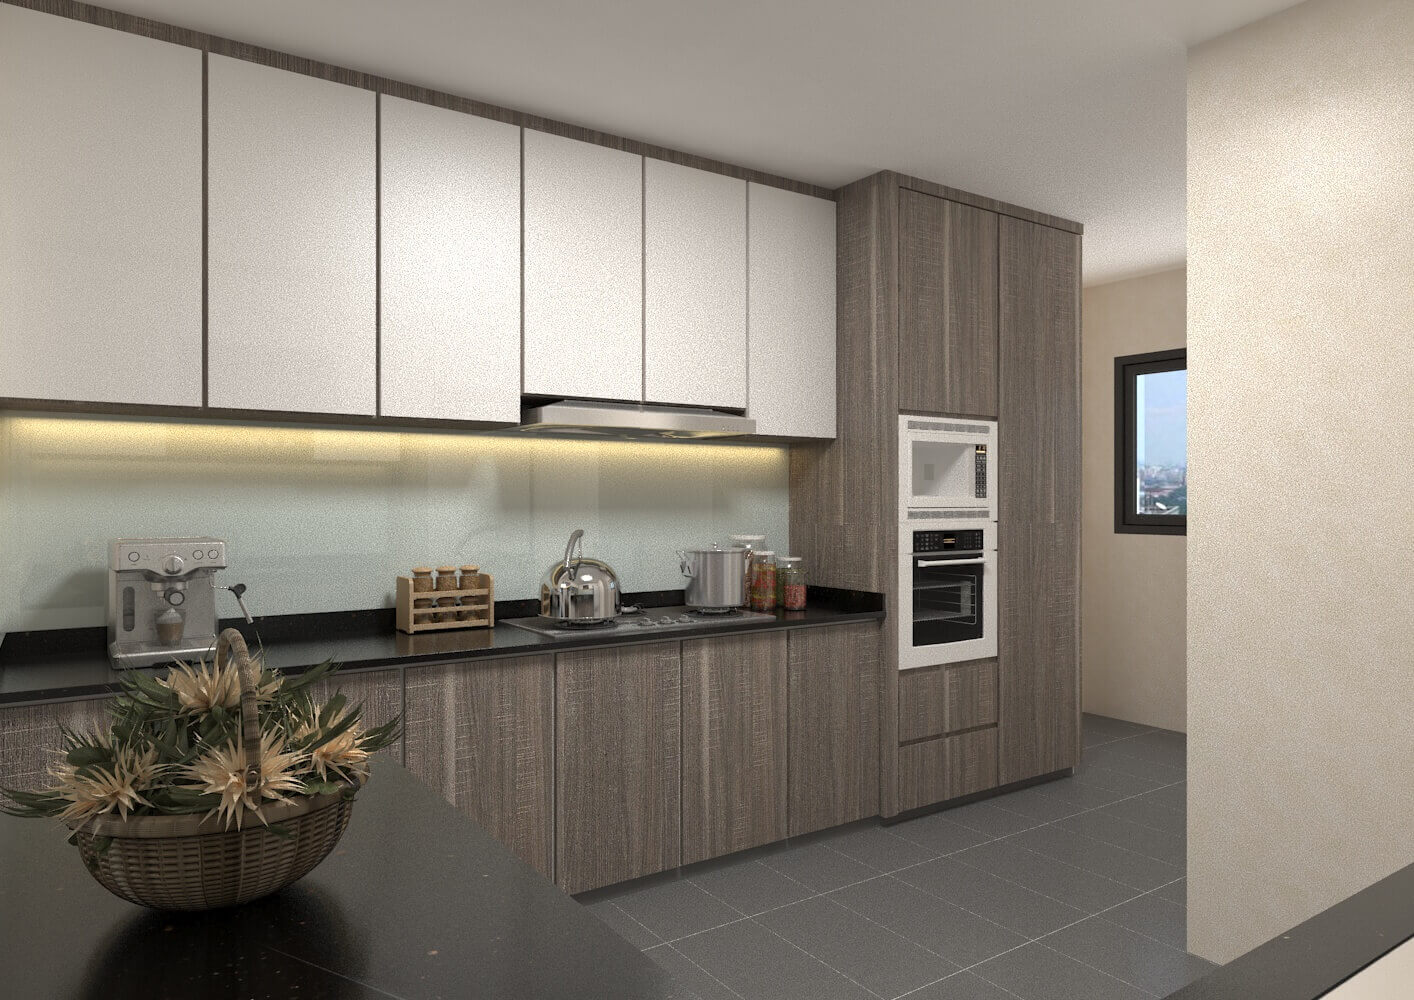 Hdb 4 room kitchen design for Four room flat design